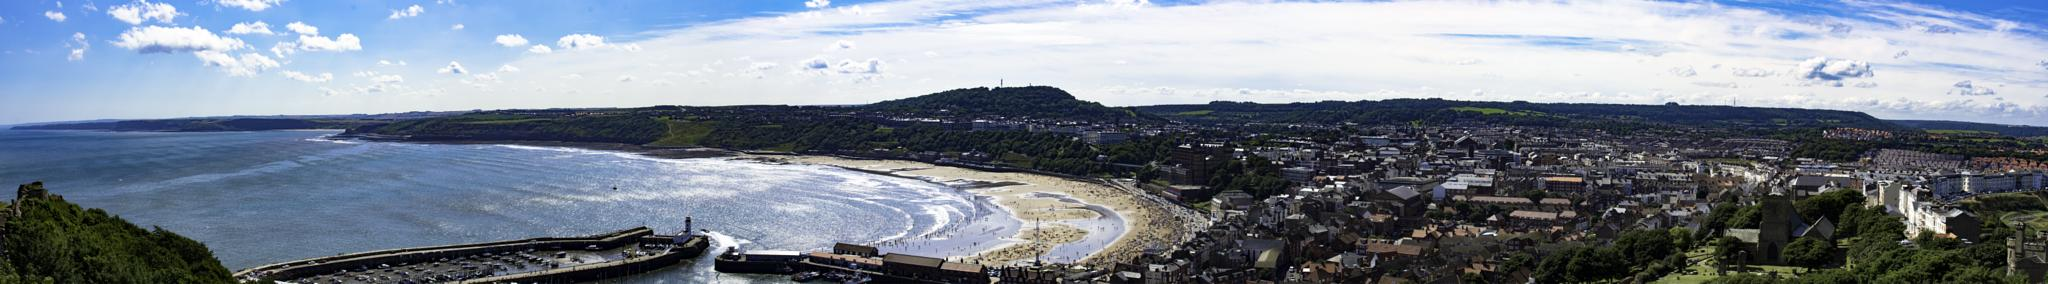 Scarborough South Bay by Neil Vary